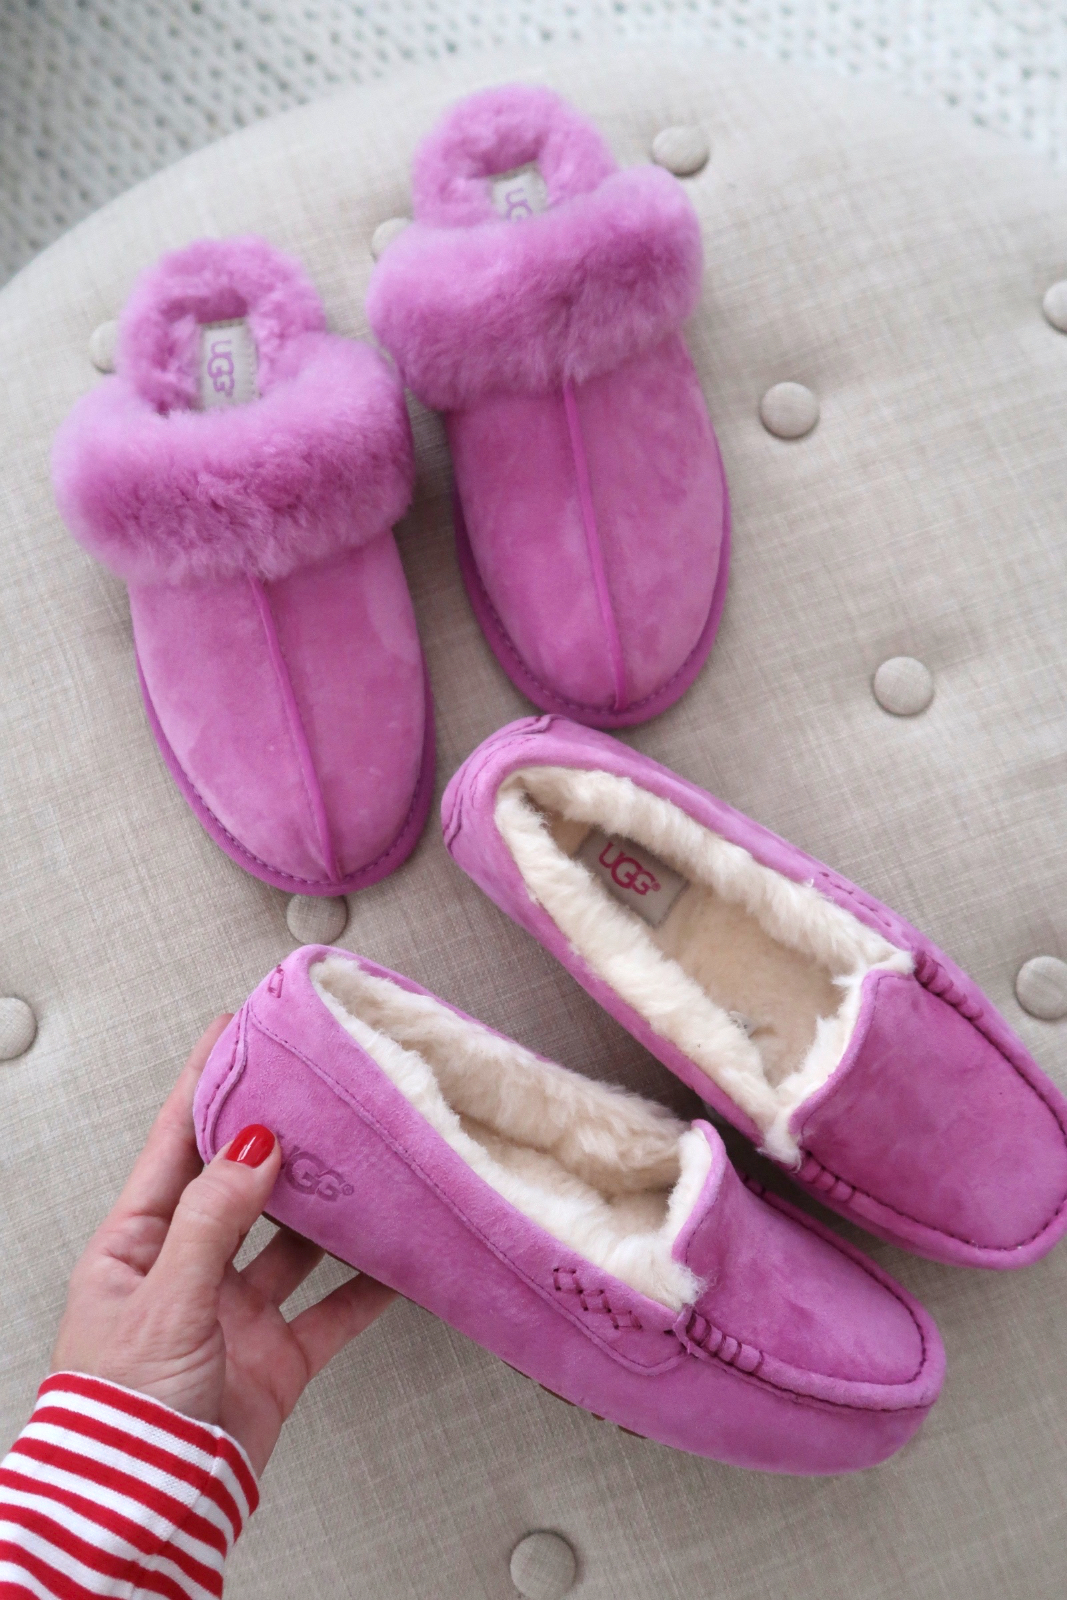 Cyber Monday Amazon UGG slippers